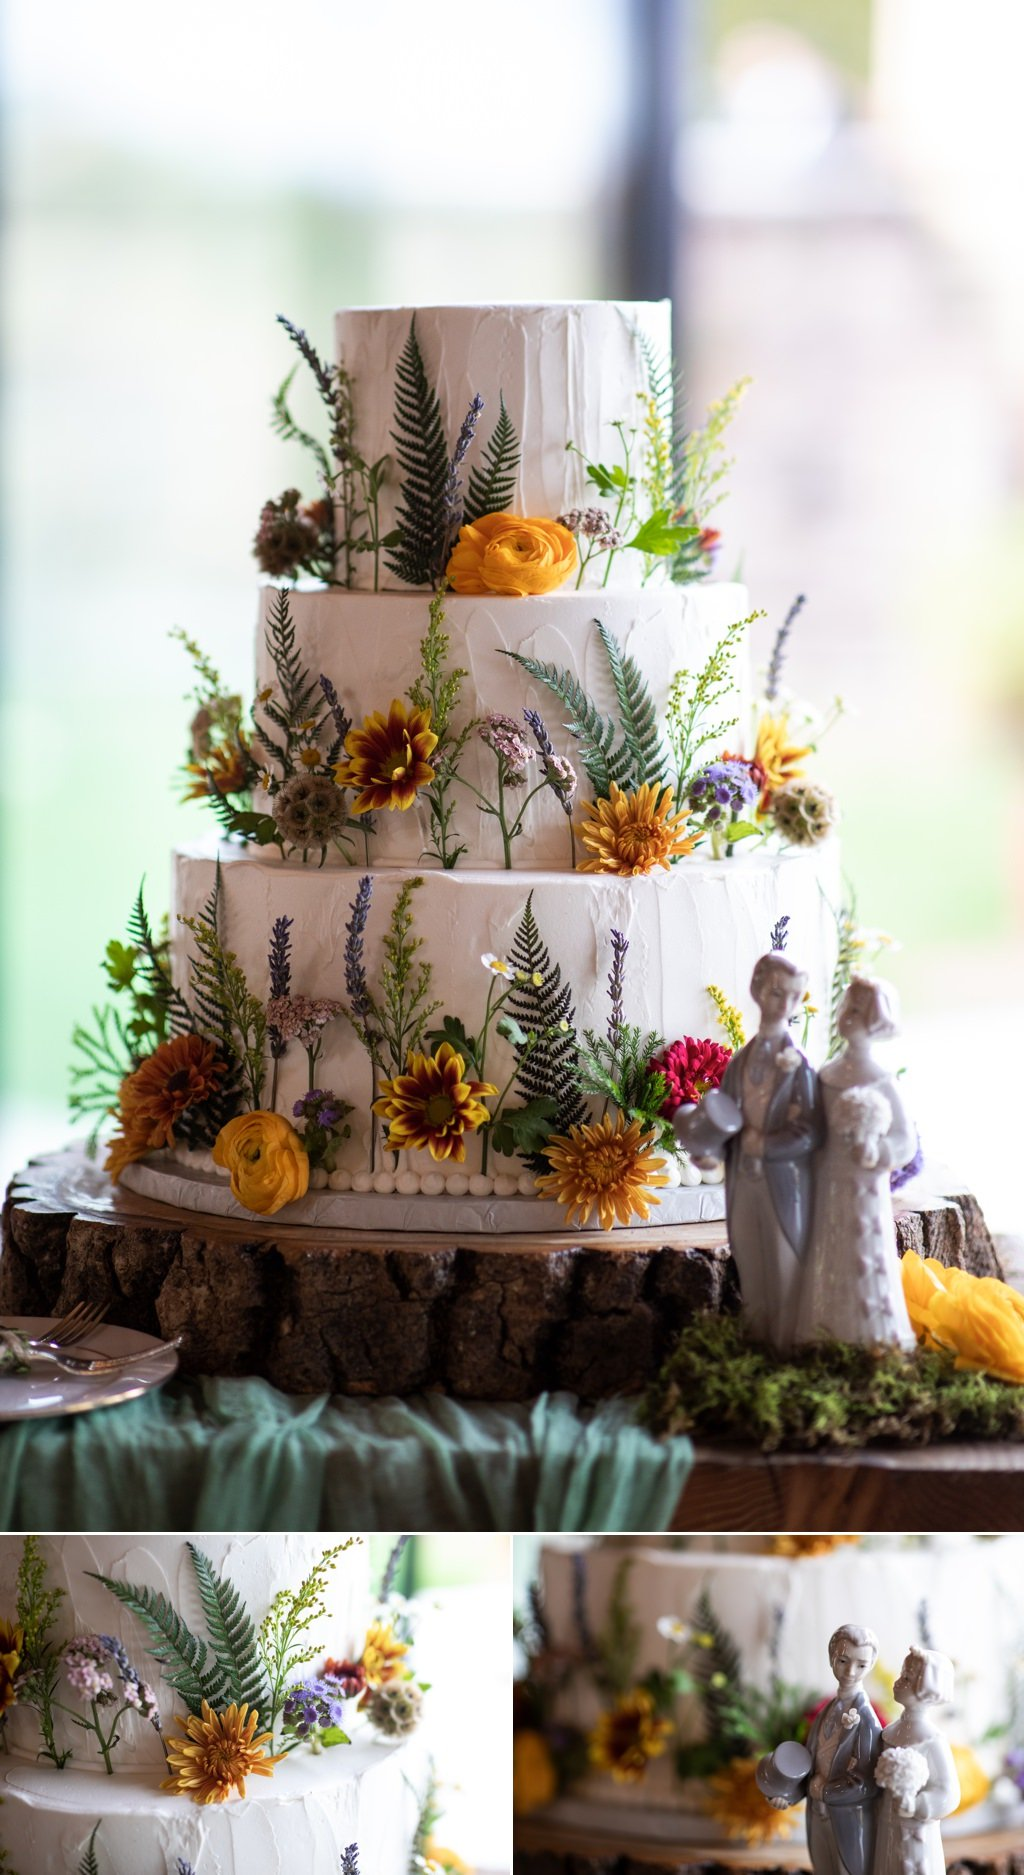 A beautiful wedding cake by rosie's creative cakes in pa